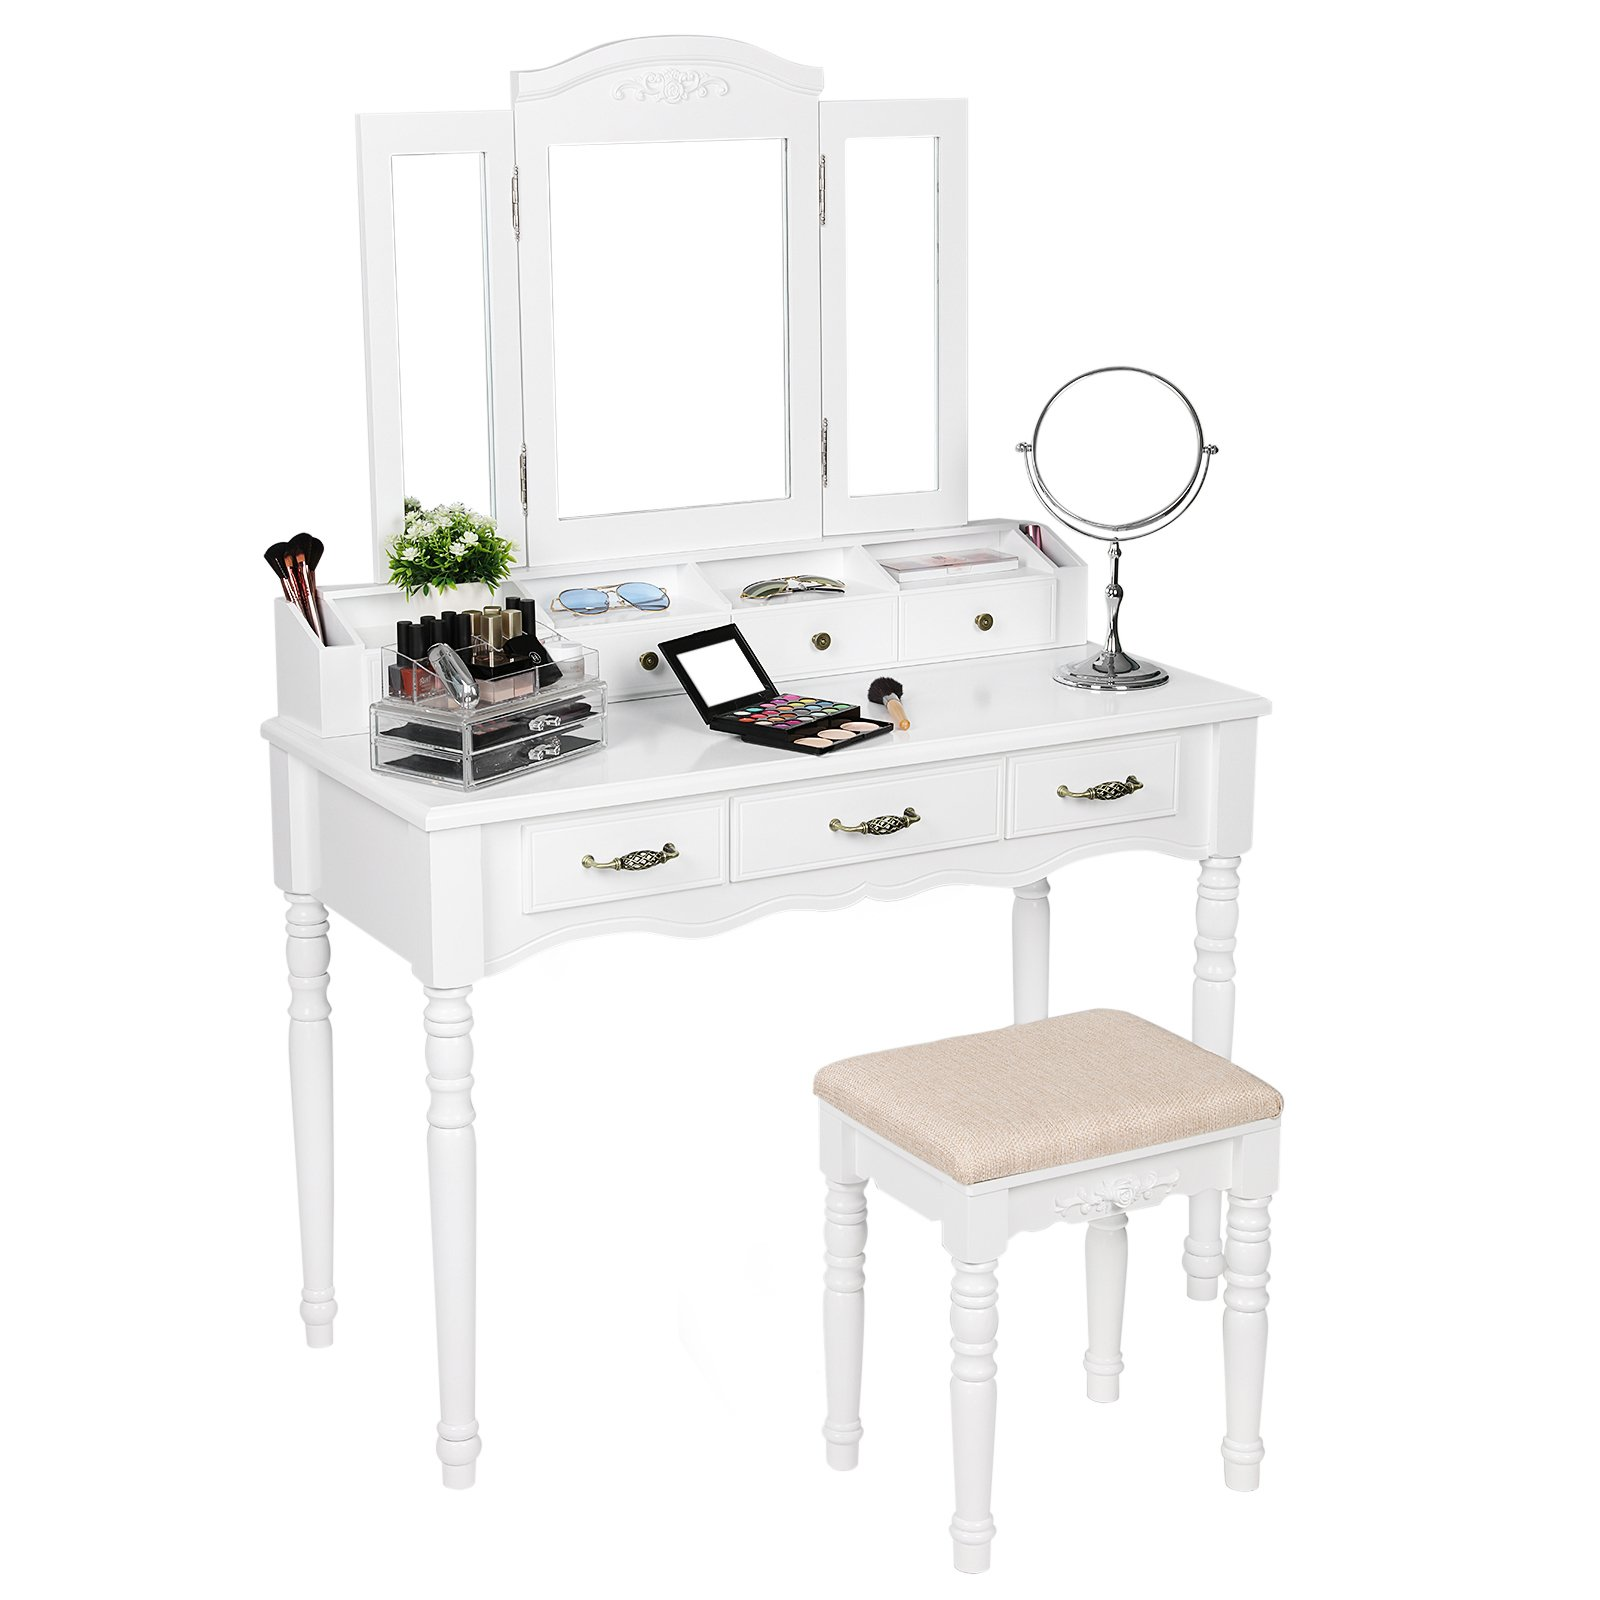 SONGMICS 7 Drawers Vanity Table Set with Tri-folding Mirror 6 Organizers Makeup Dressing Table with Cushioned Stool White URDT06M by SONGMICS